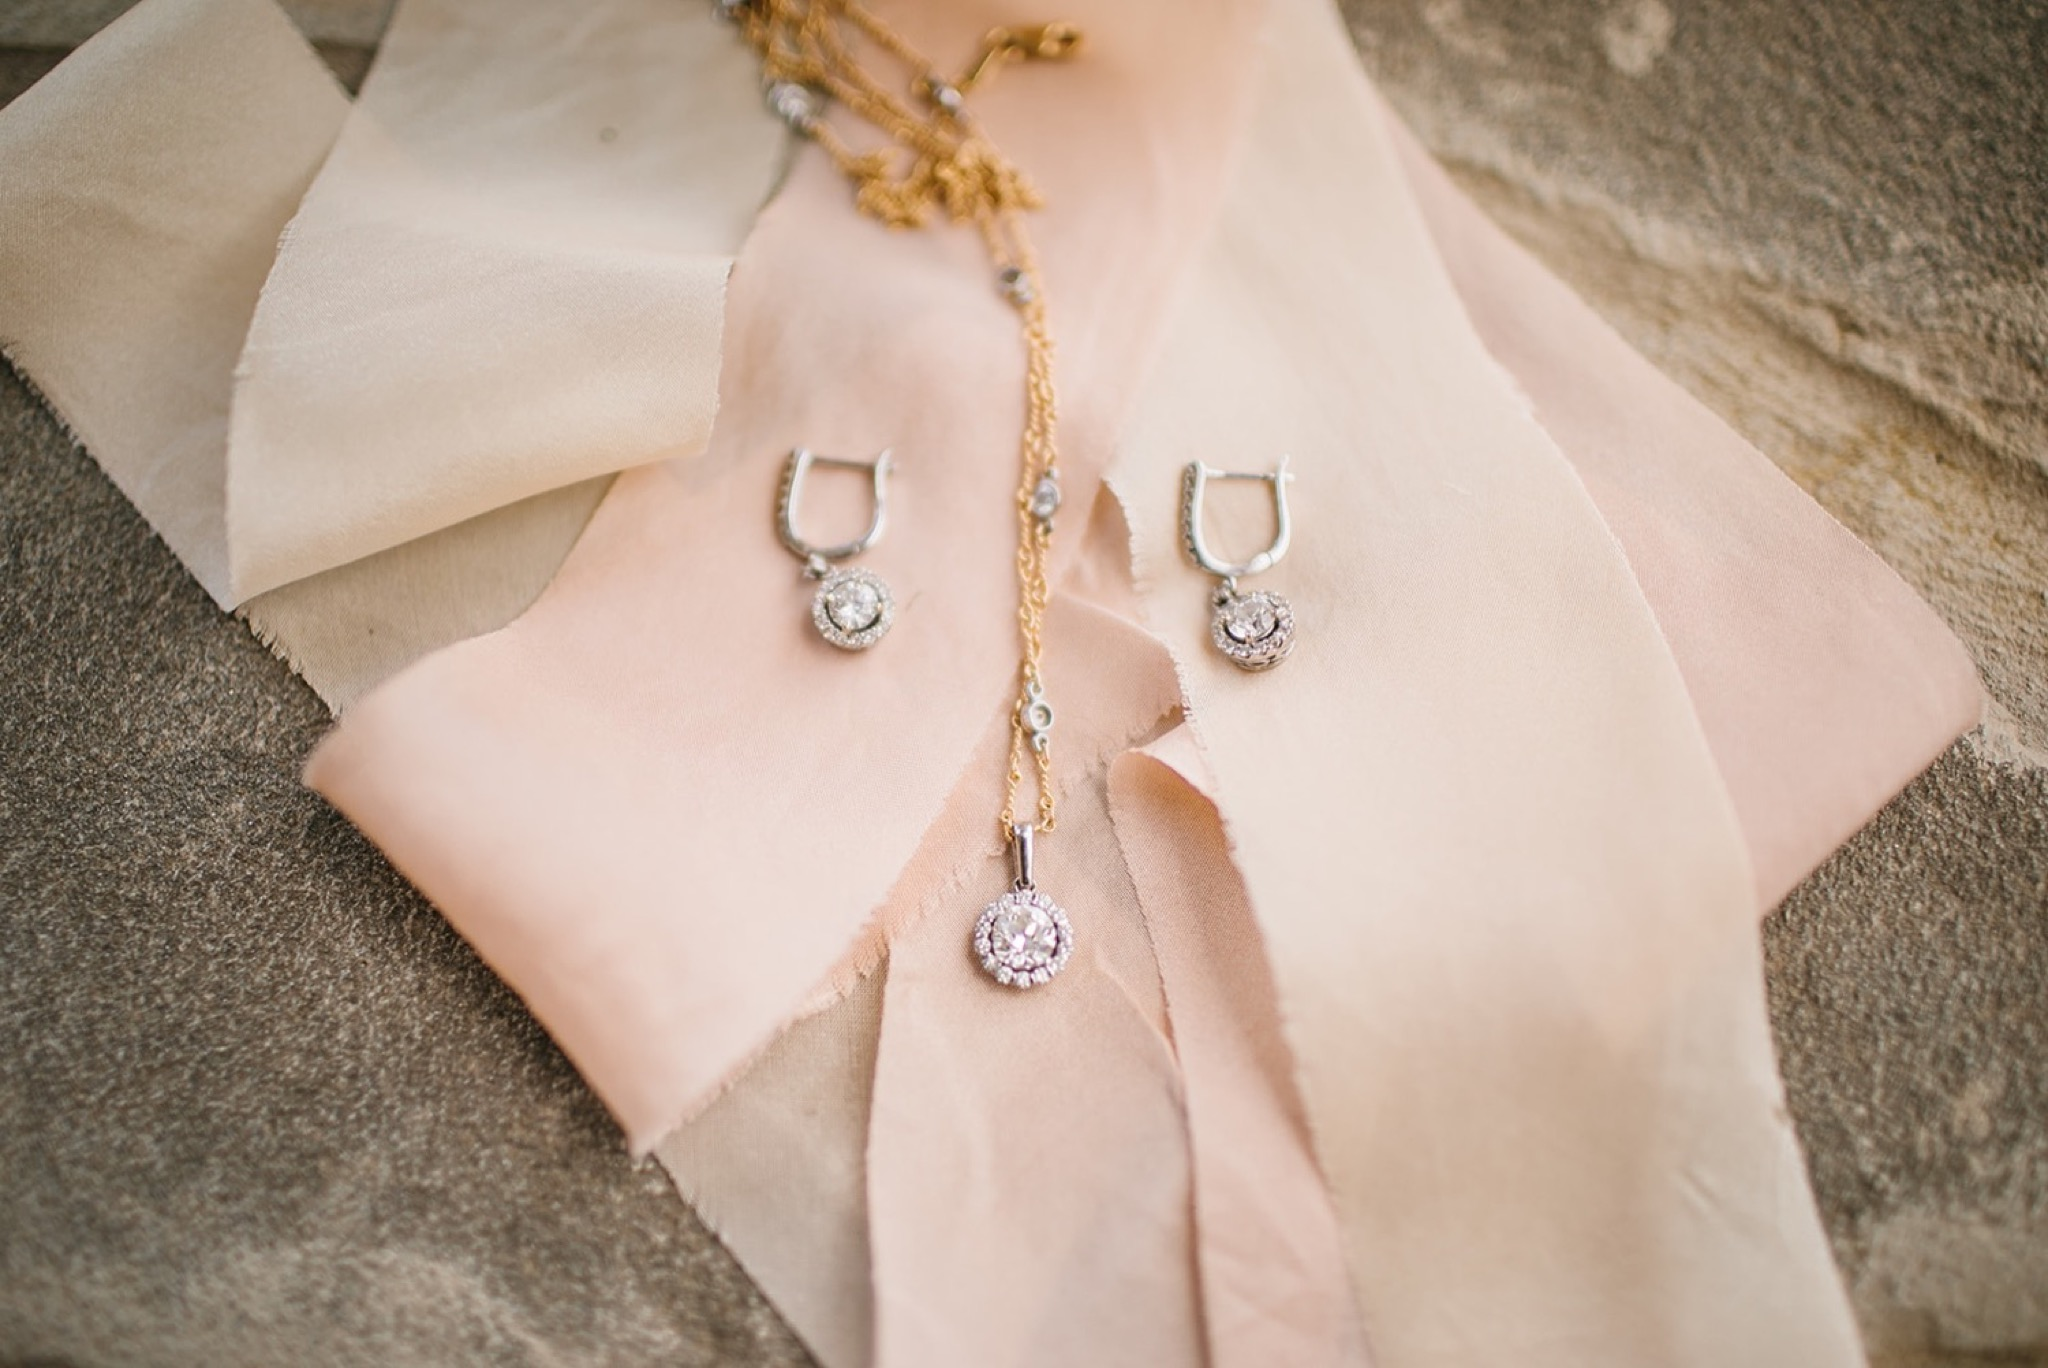 diamond earrings and necklace rest on pale pink strip of fabric